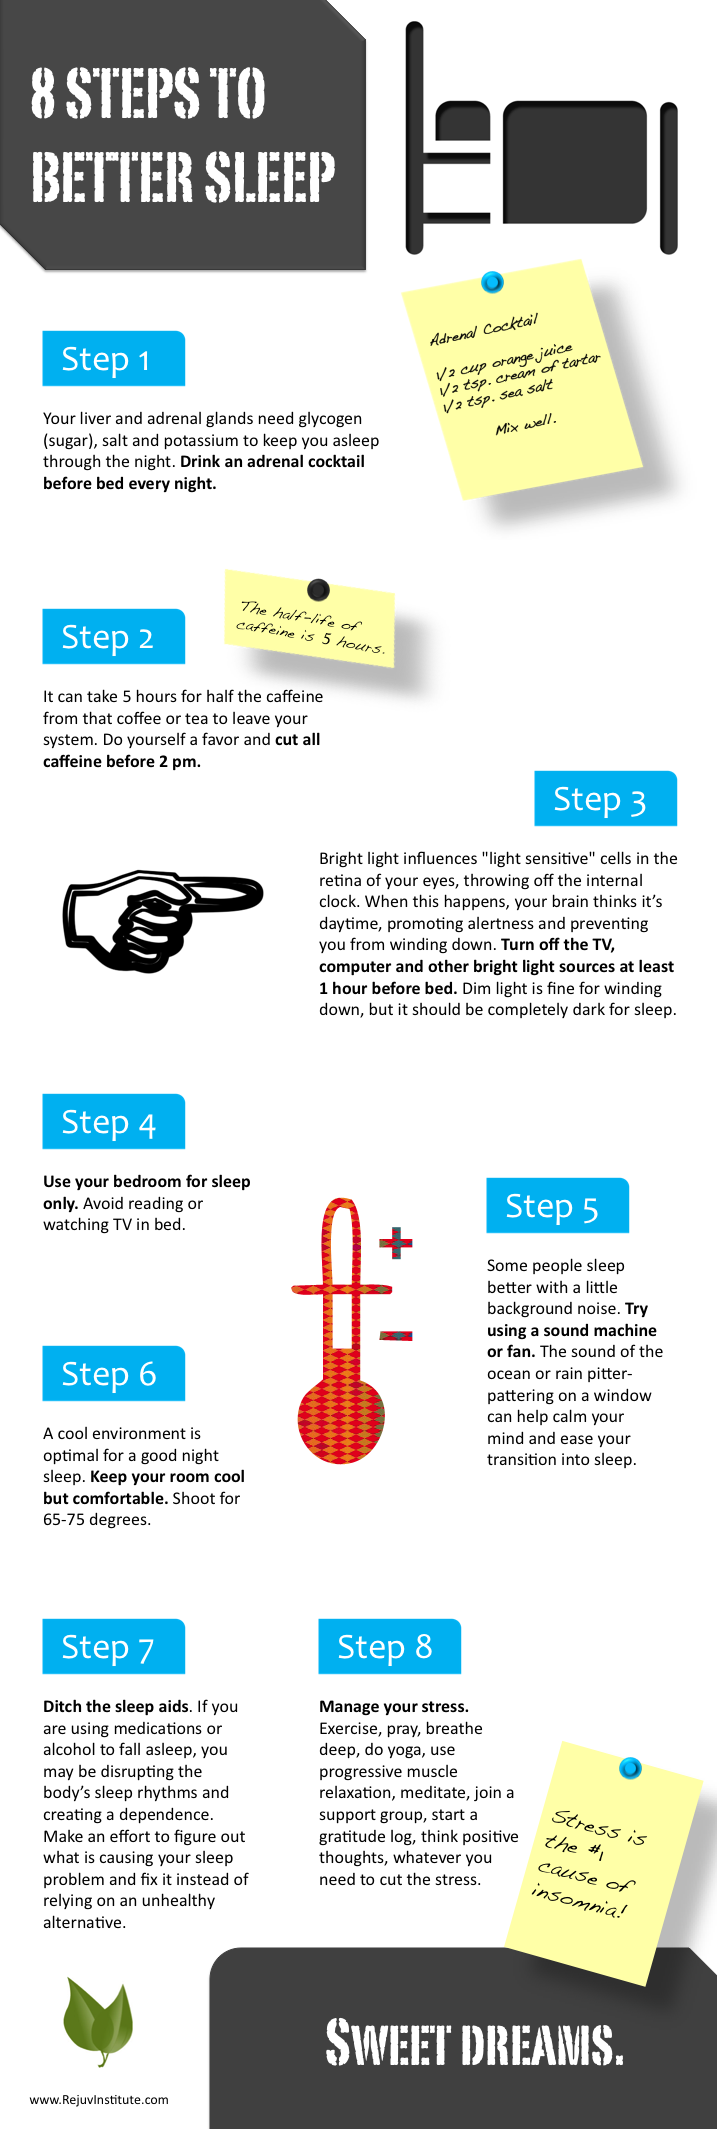 Infographic outlining the 8 steps to better sleep